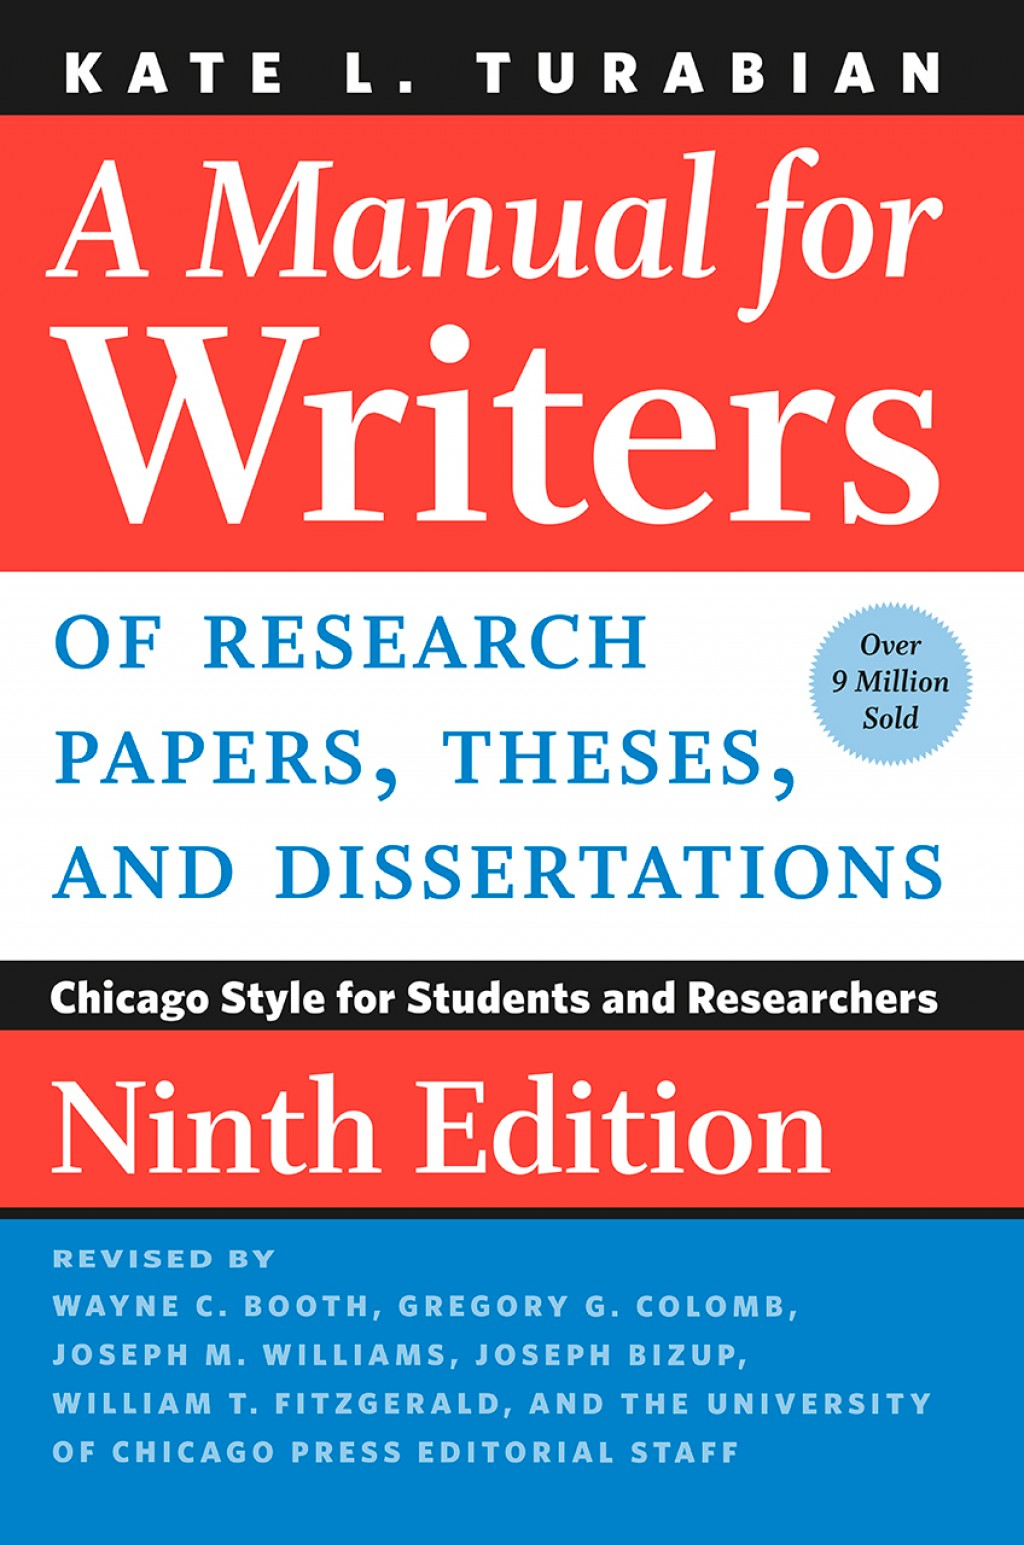 001 Manual For Writers Of Researchs Theses And Dissertations Sensational A Research Papers 8th Edition Pdf Eighth Large